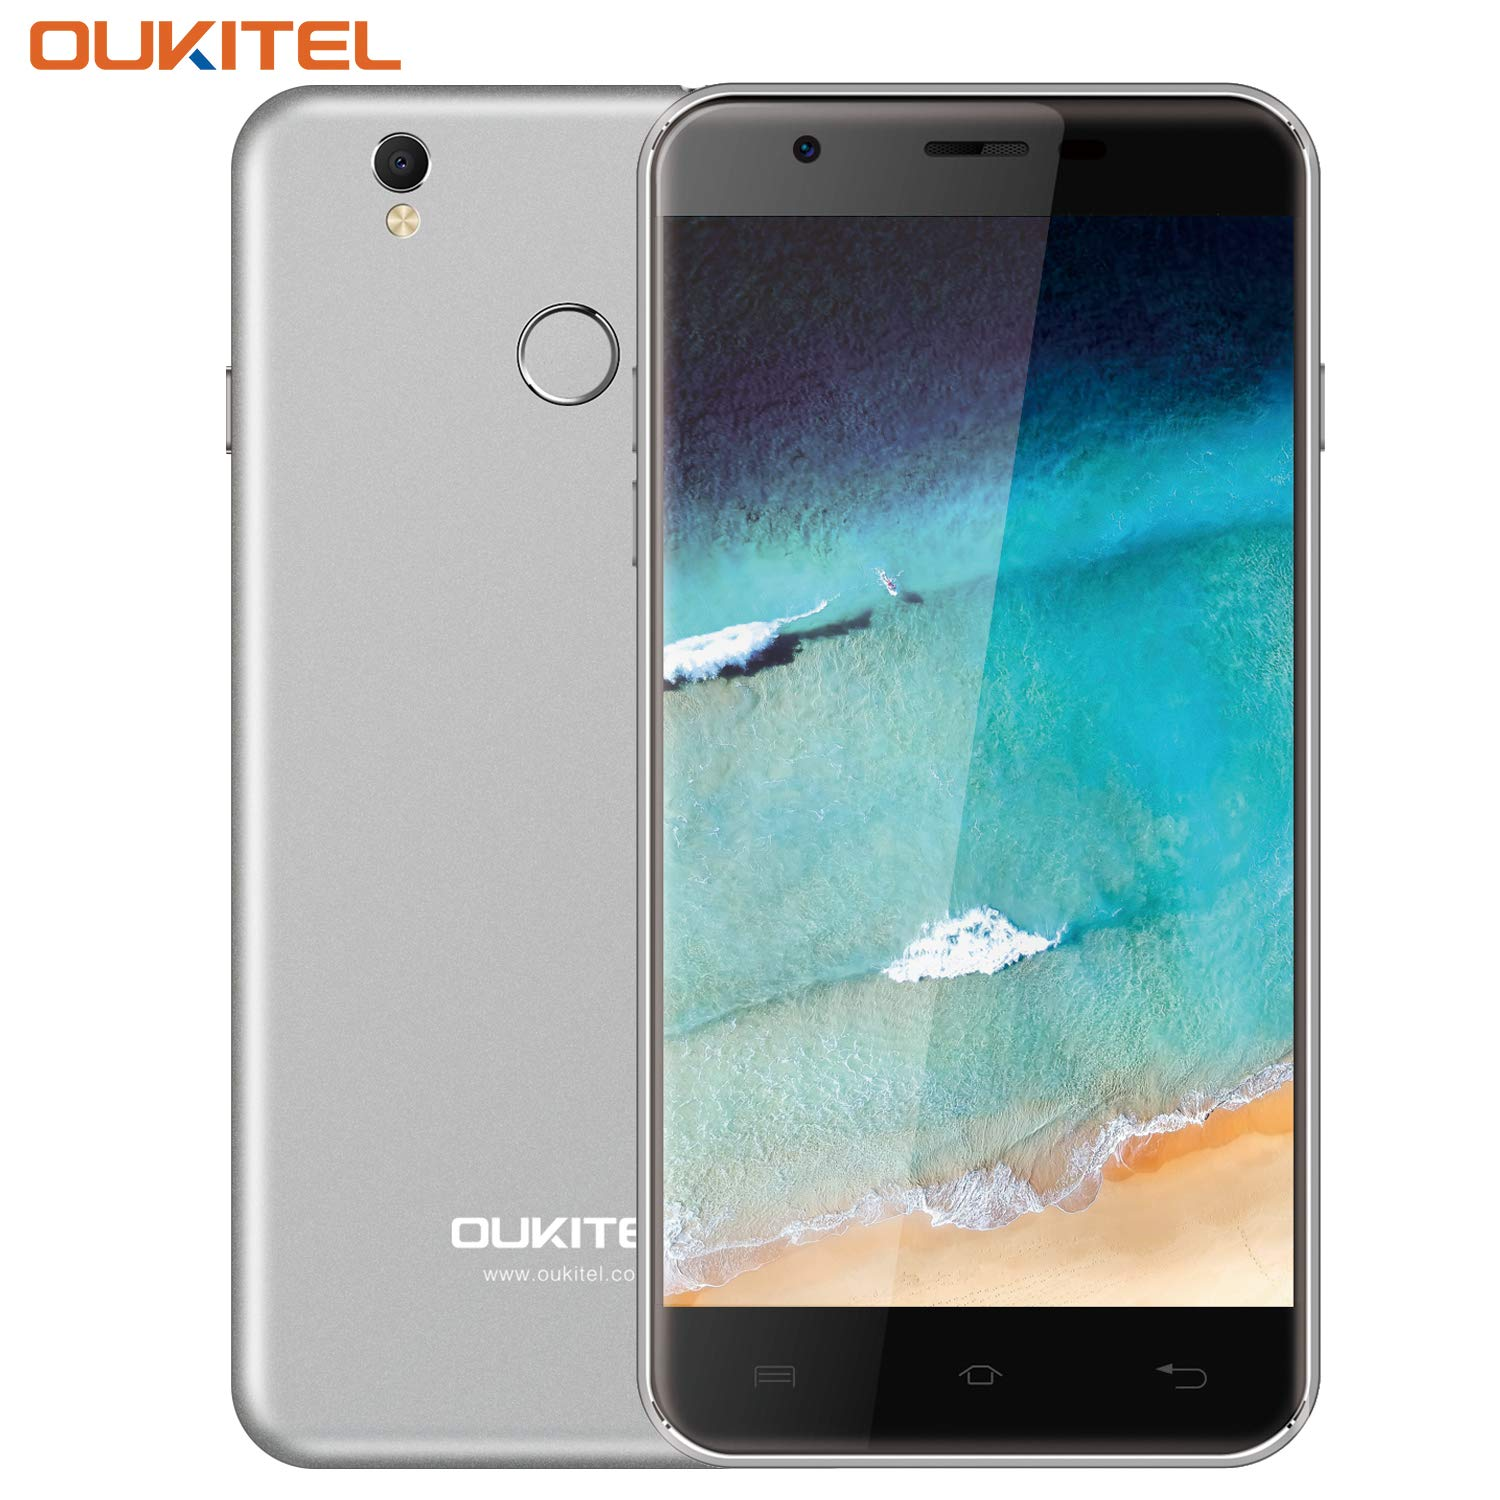 Unlocked Cell Phones, Oukitel U7 Plus Unlocked Smartphone 5.5 Inch Dual SIM Android 6.0 Quad Core 2GB RAM 16GB ROM Mobile Phone 2500mAh-Grey